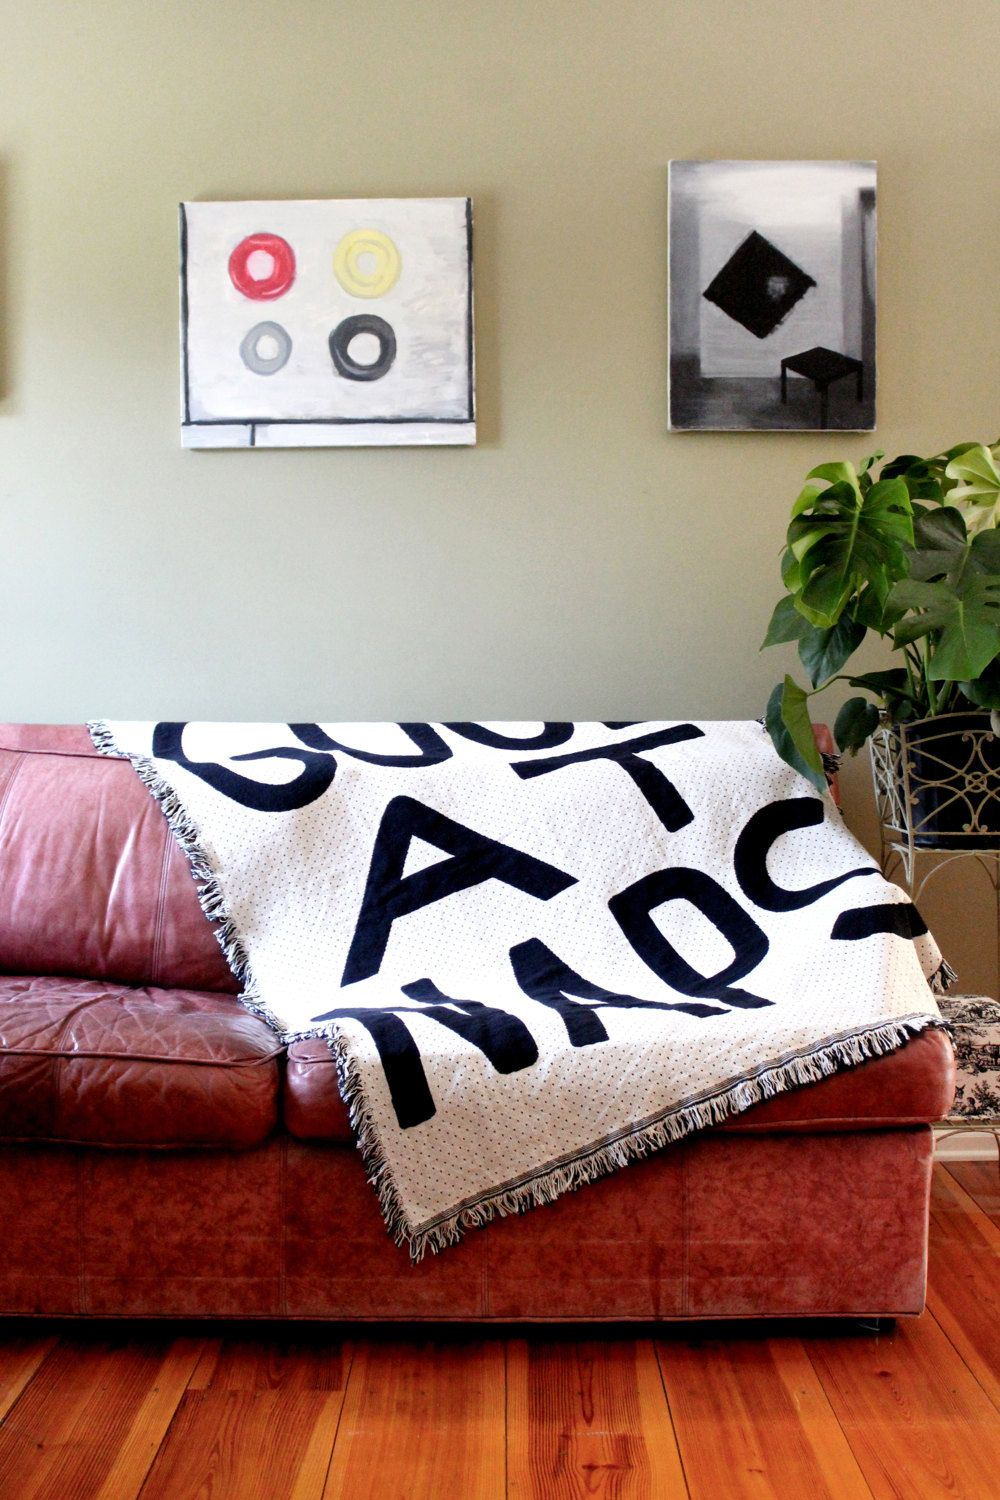 GOOD AT NAPS Throw Blanket - Black and White Blankets - Living Room ...